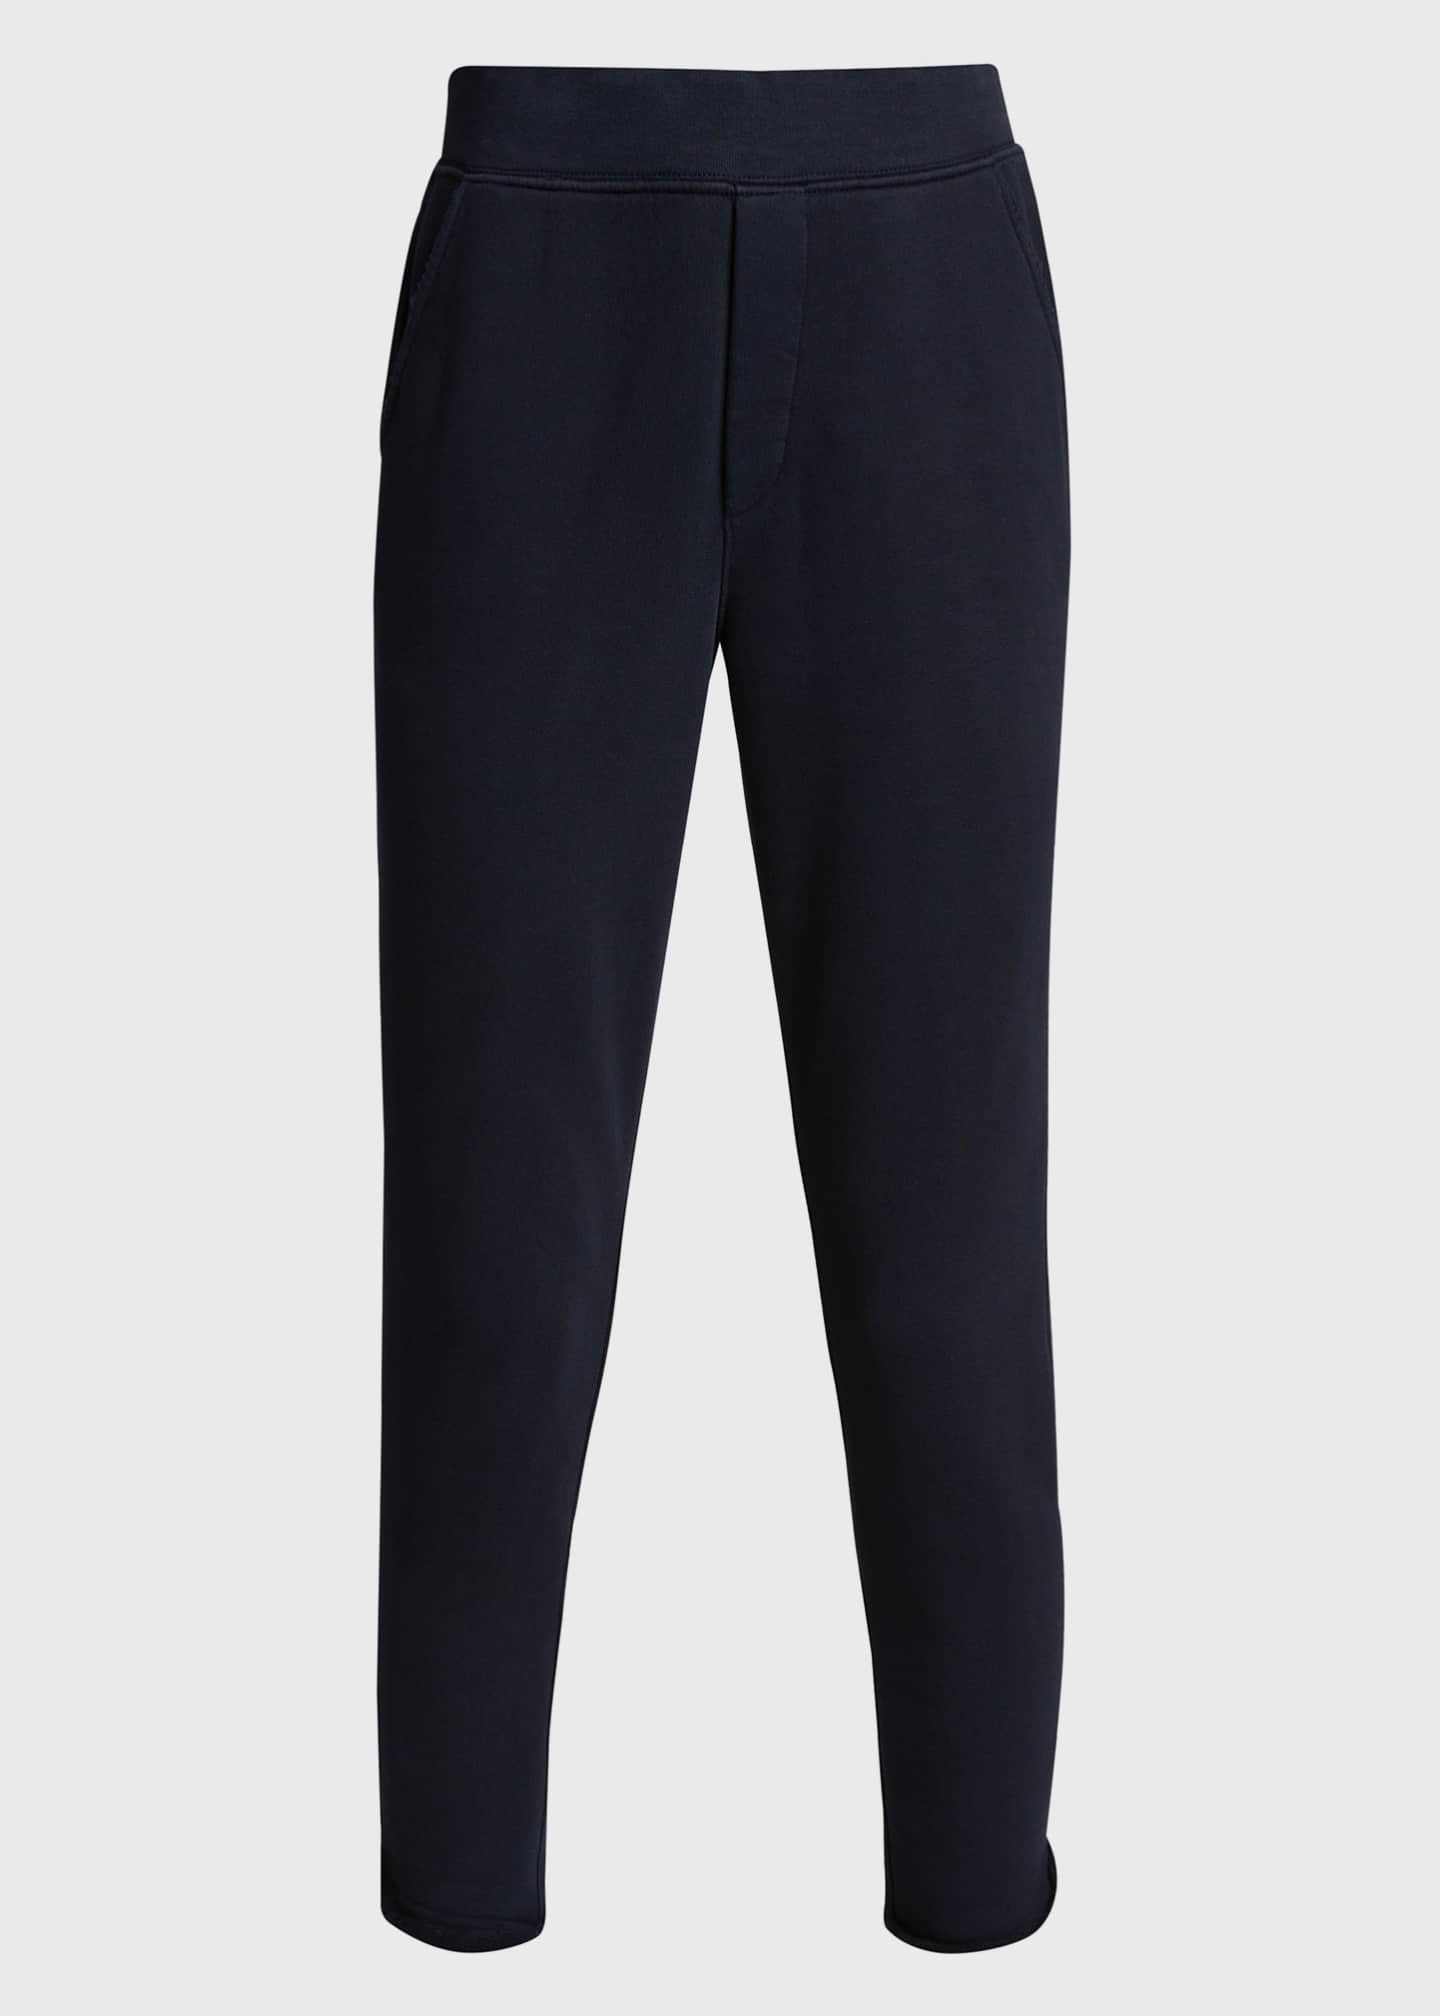 Image 5 of 5: Tulip Ankle Cropped Sweatpants